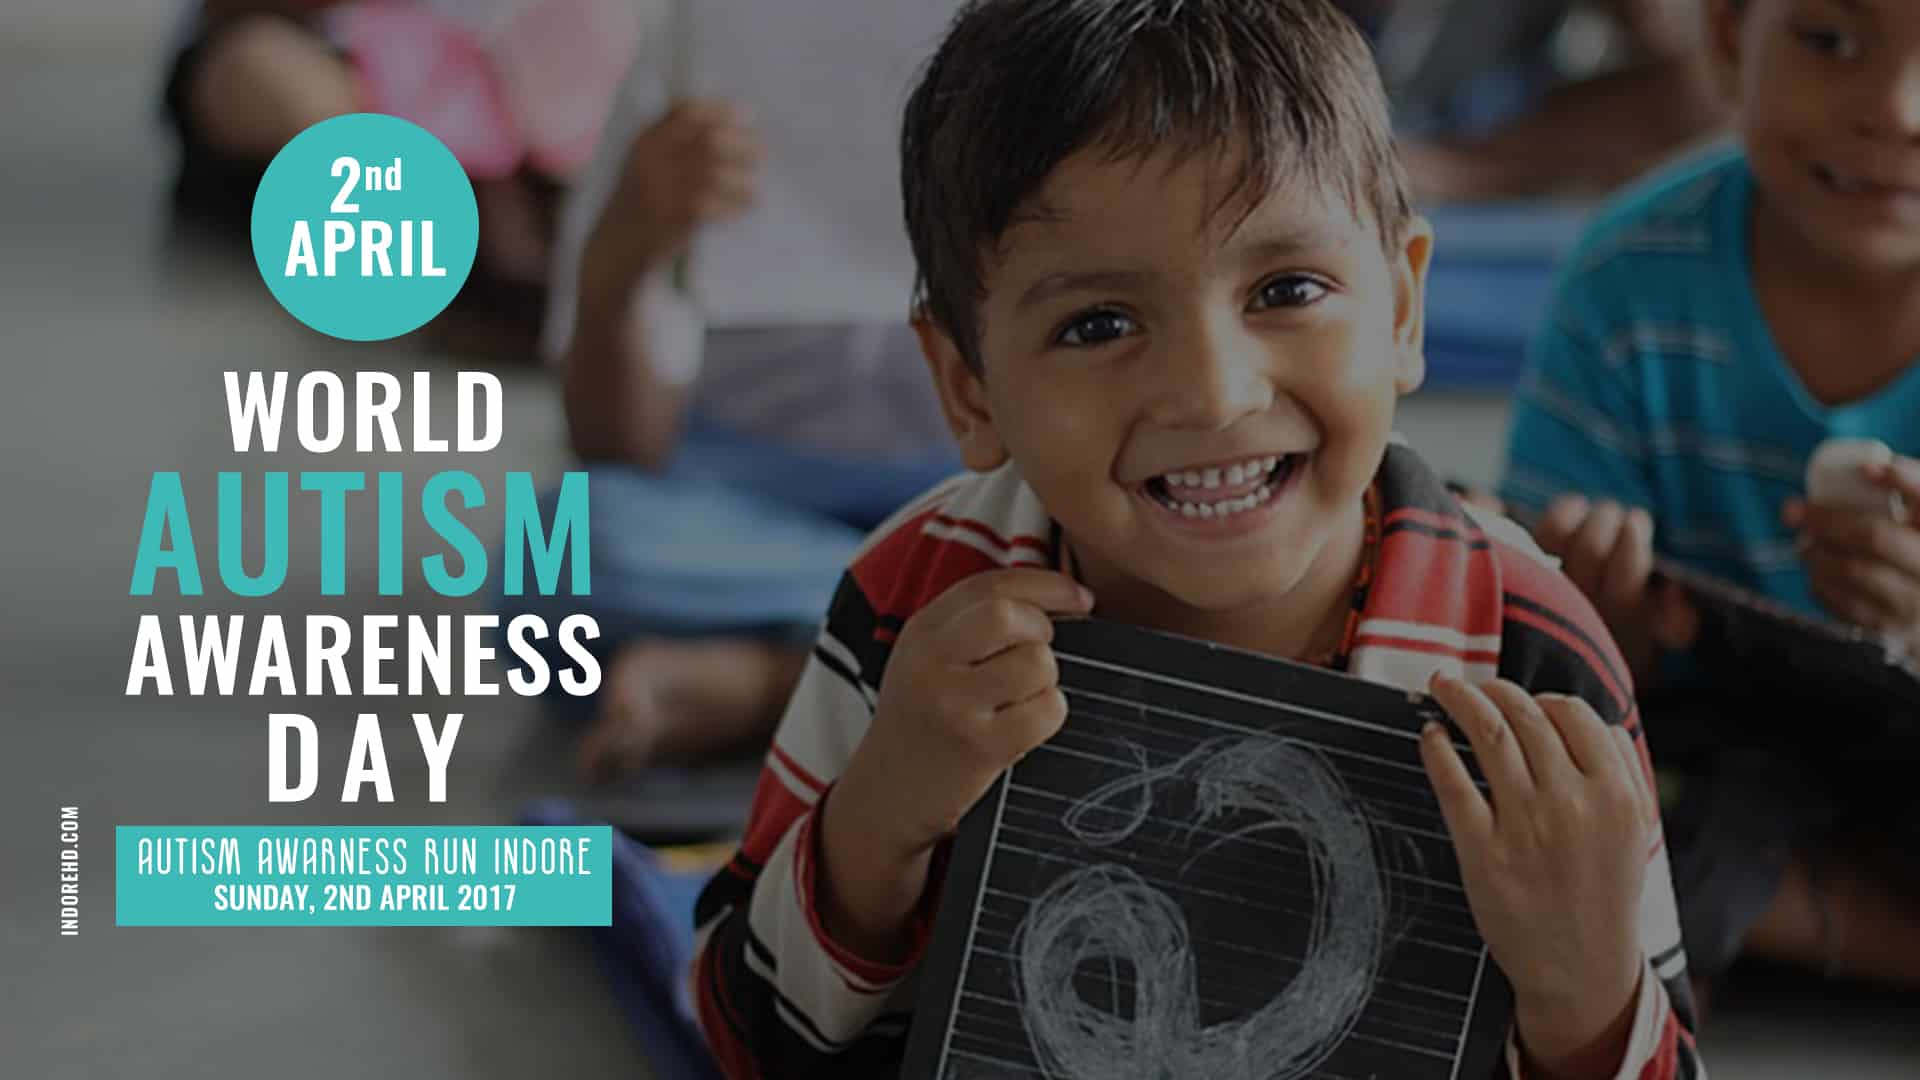 2nd-april-world-autism-awareness-day-indore-indorehd